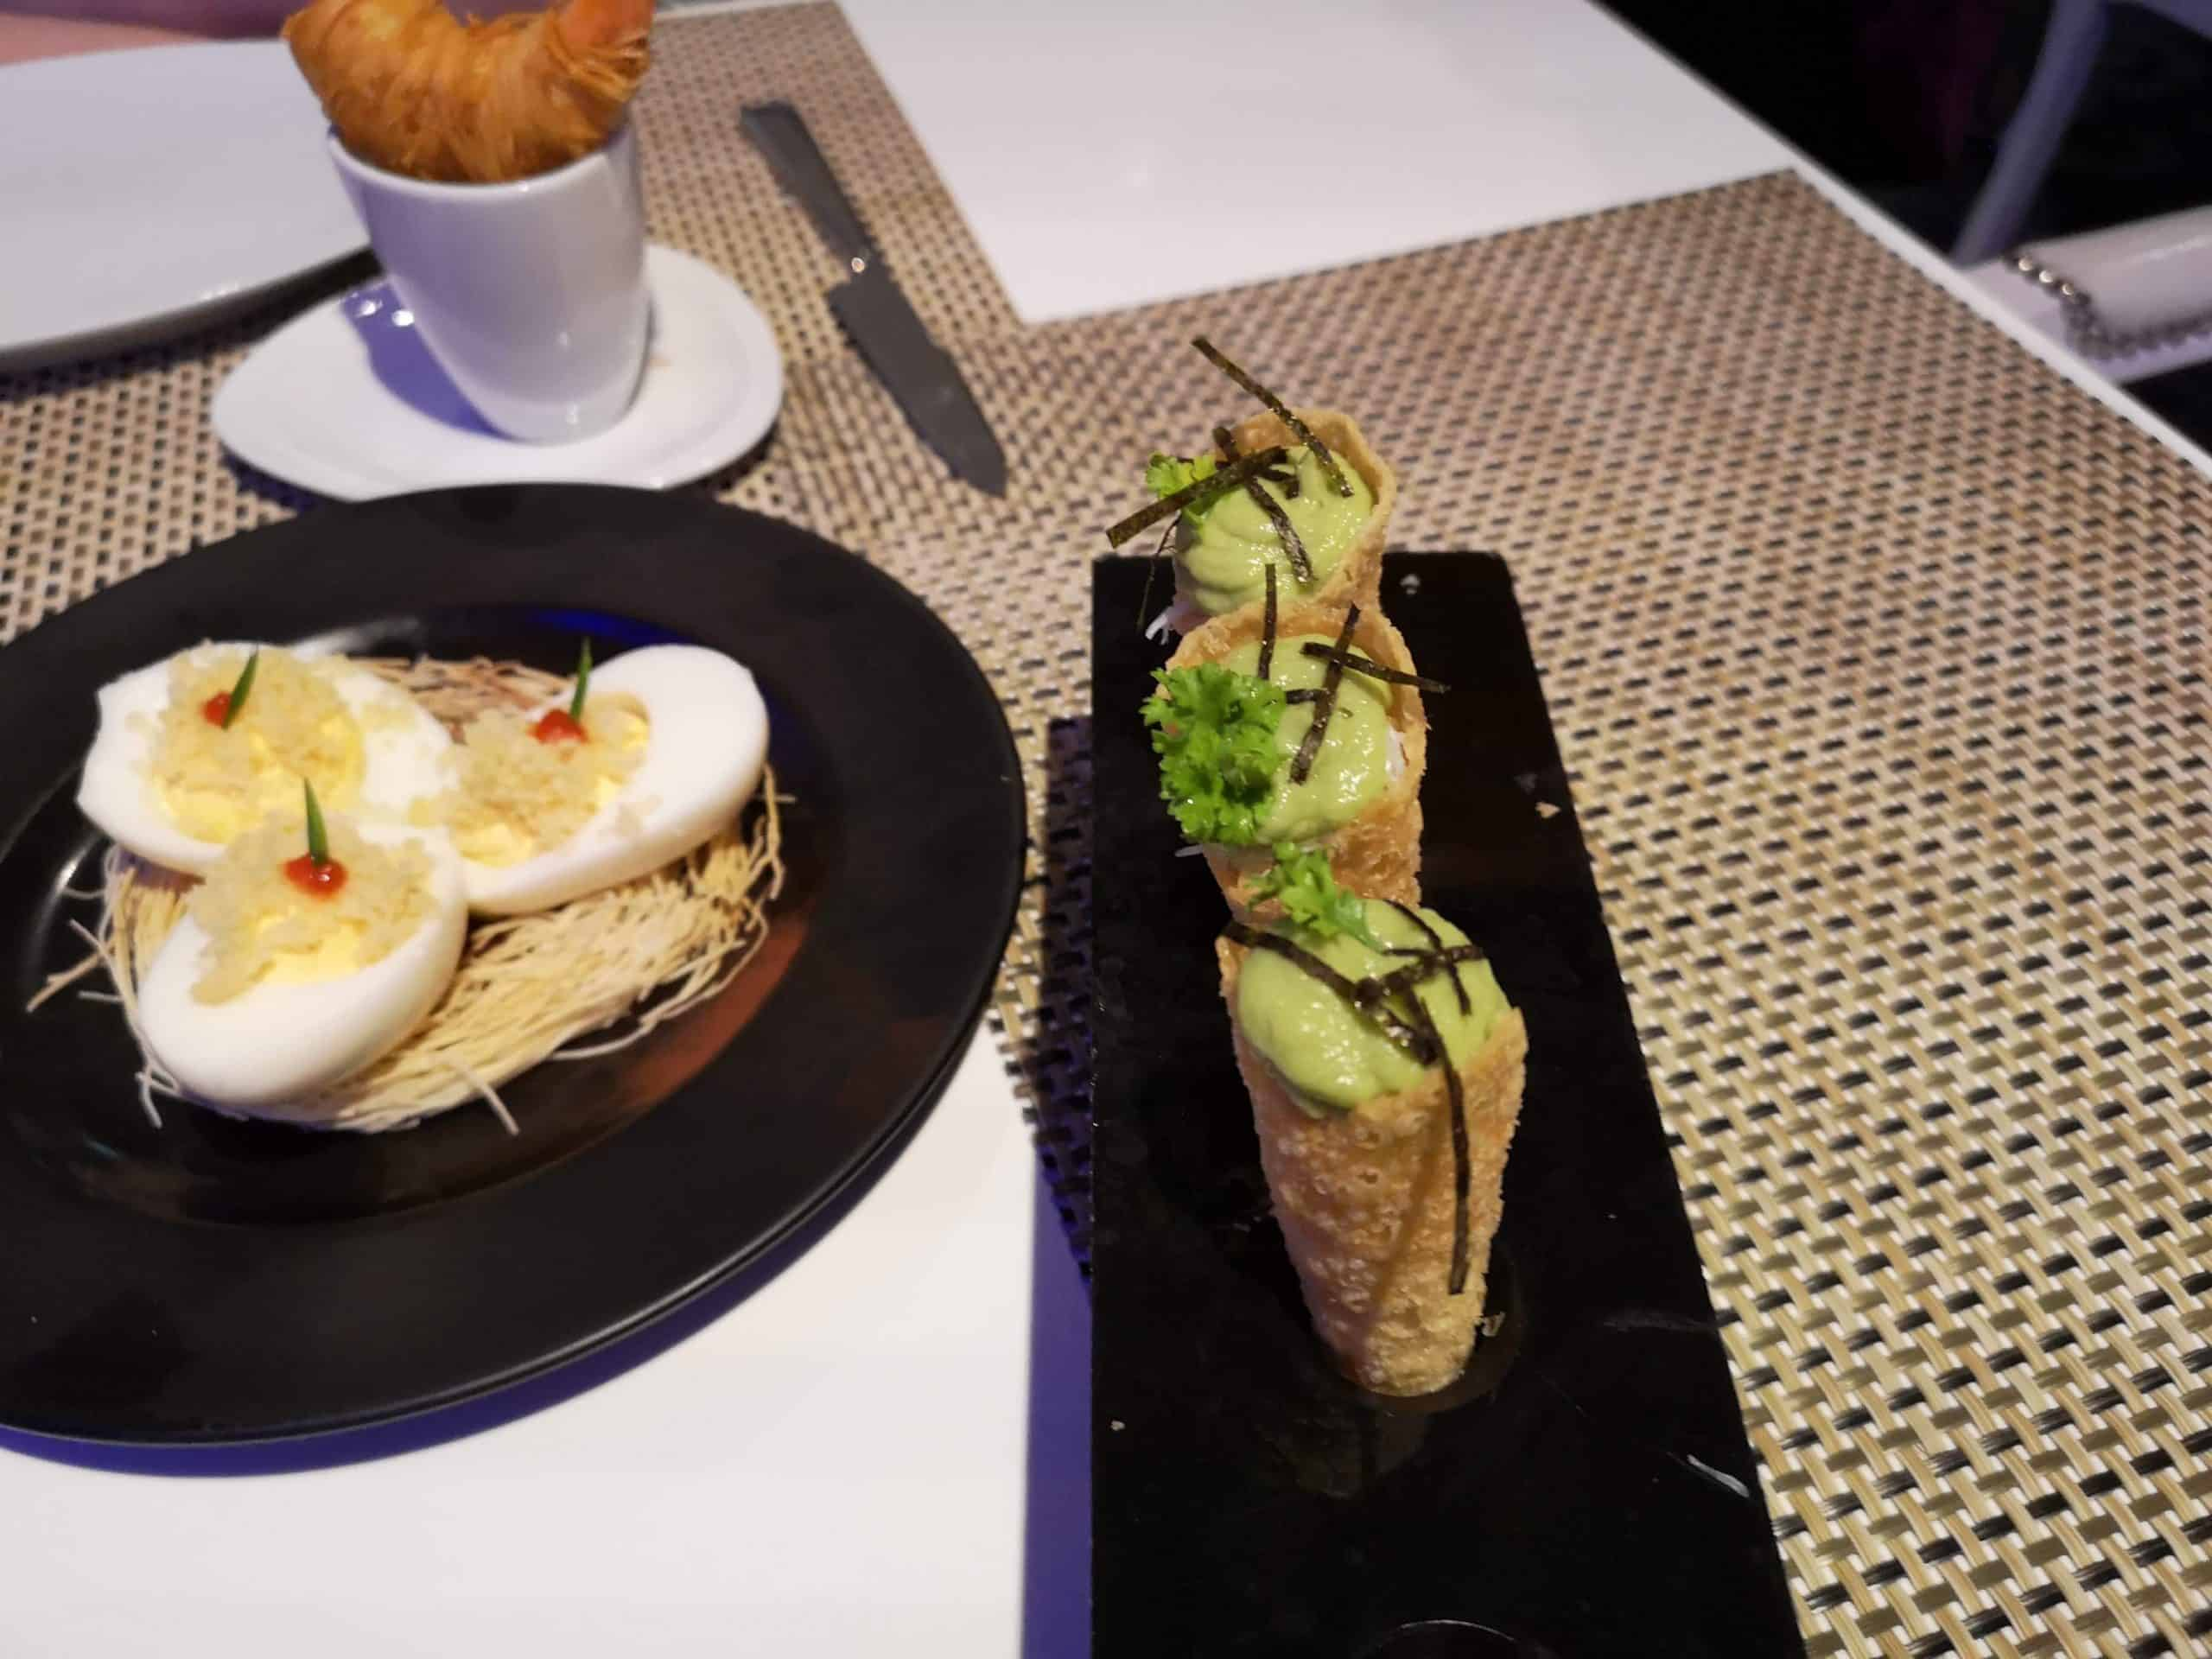 Crispy crab with avocado mouse